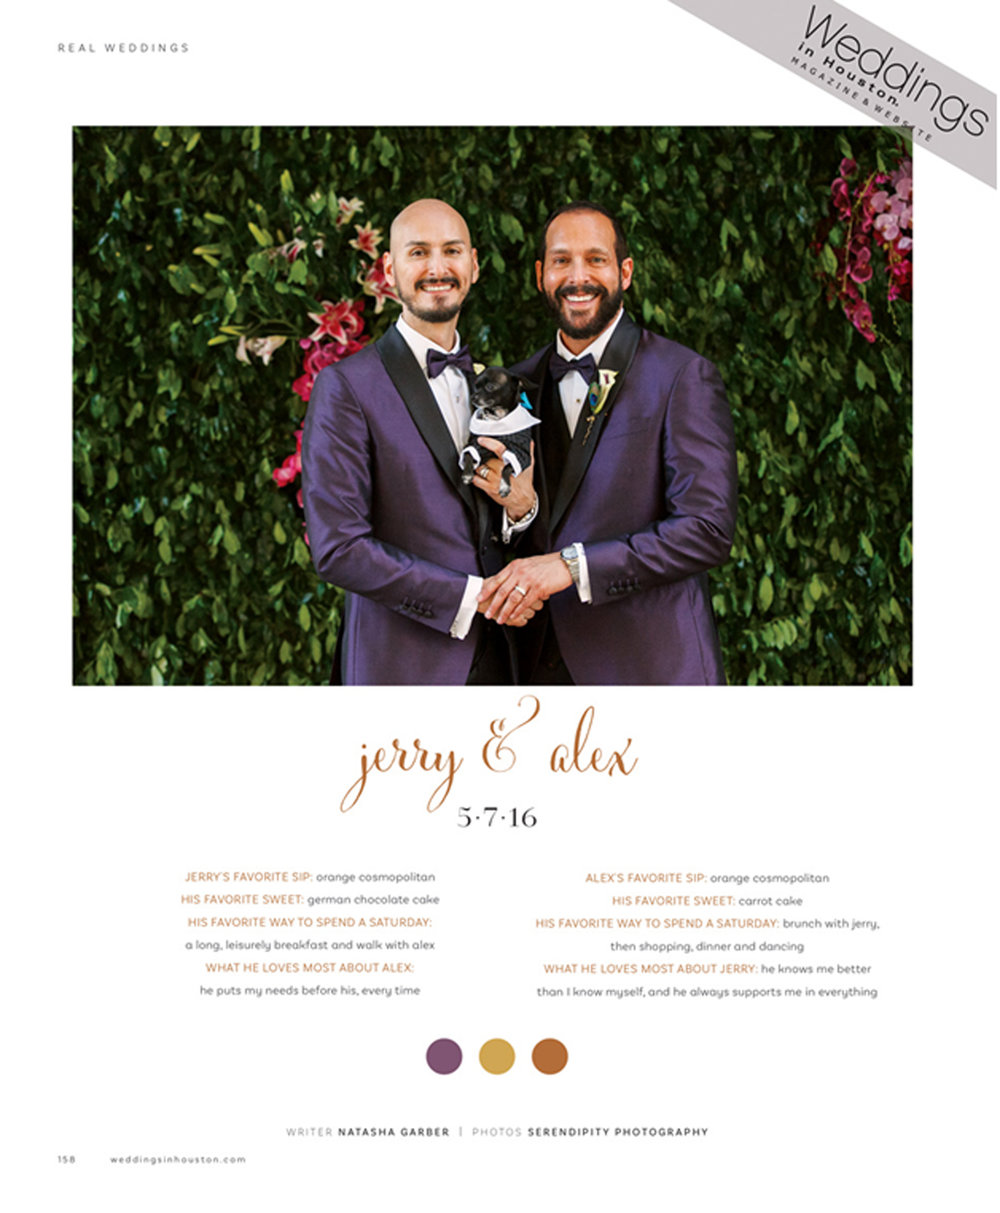 WiH_Wedding Feature_Page 1.jpg